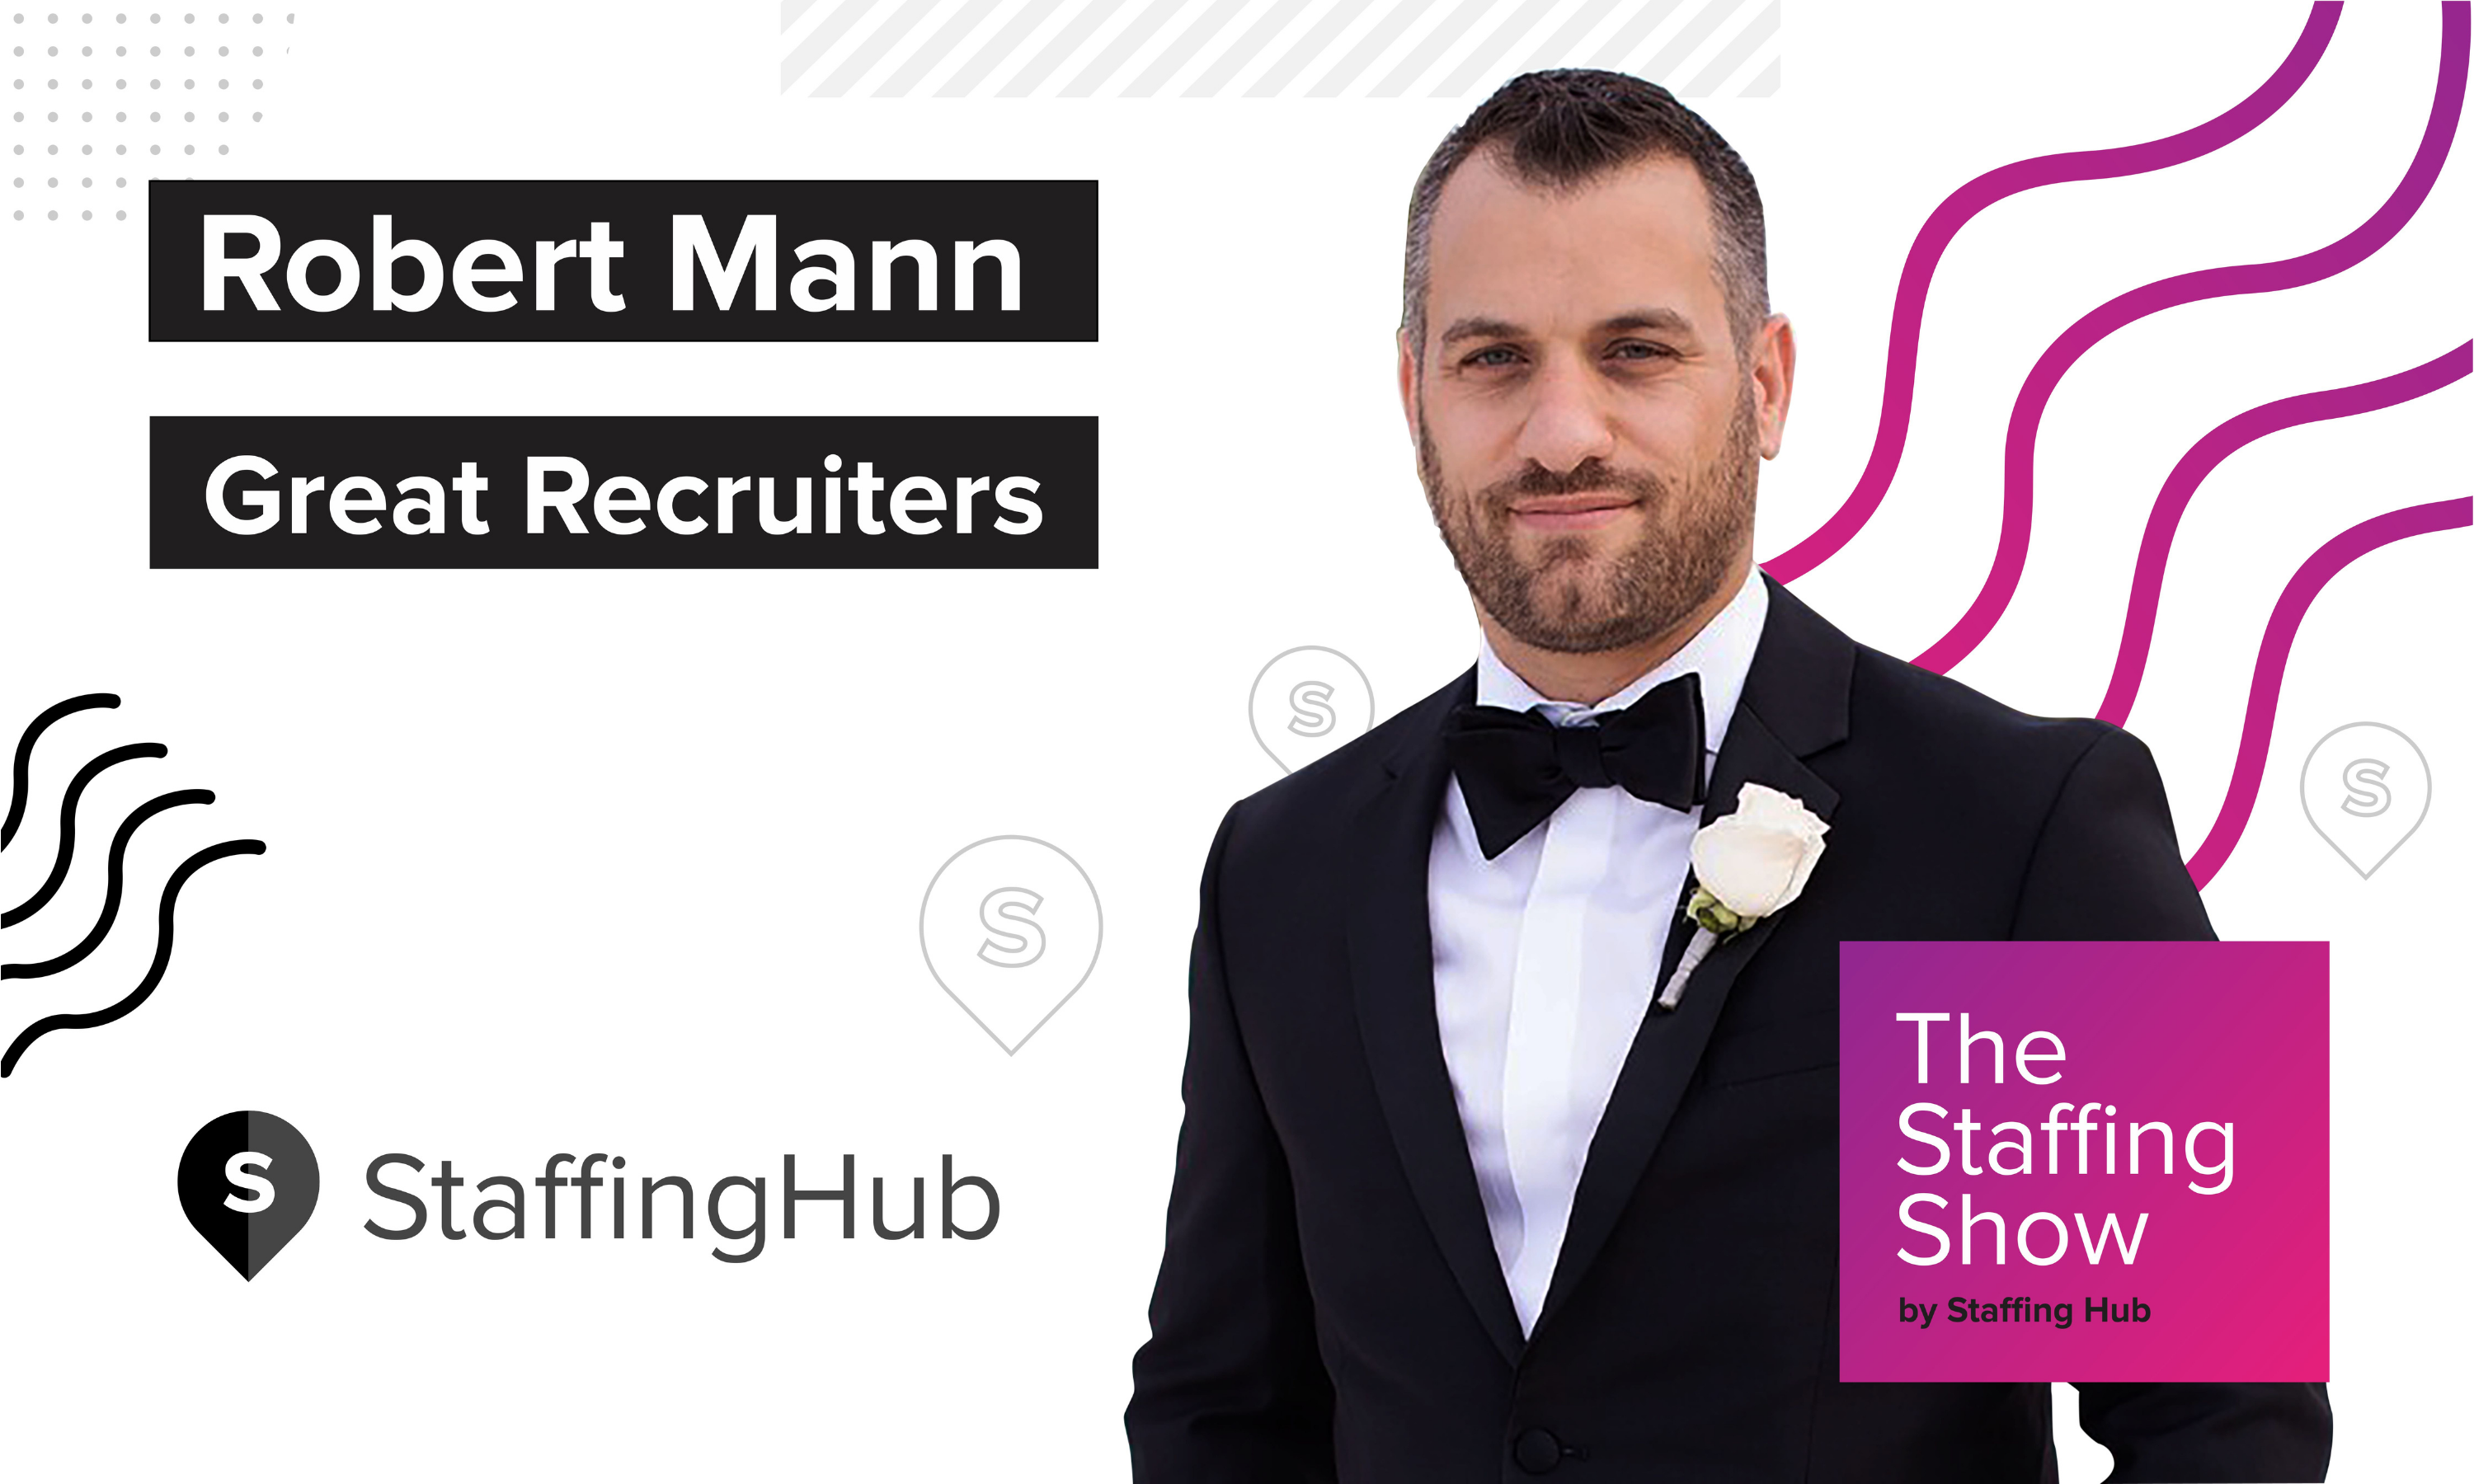 rob-mann-great-recruiters